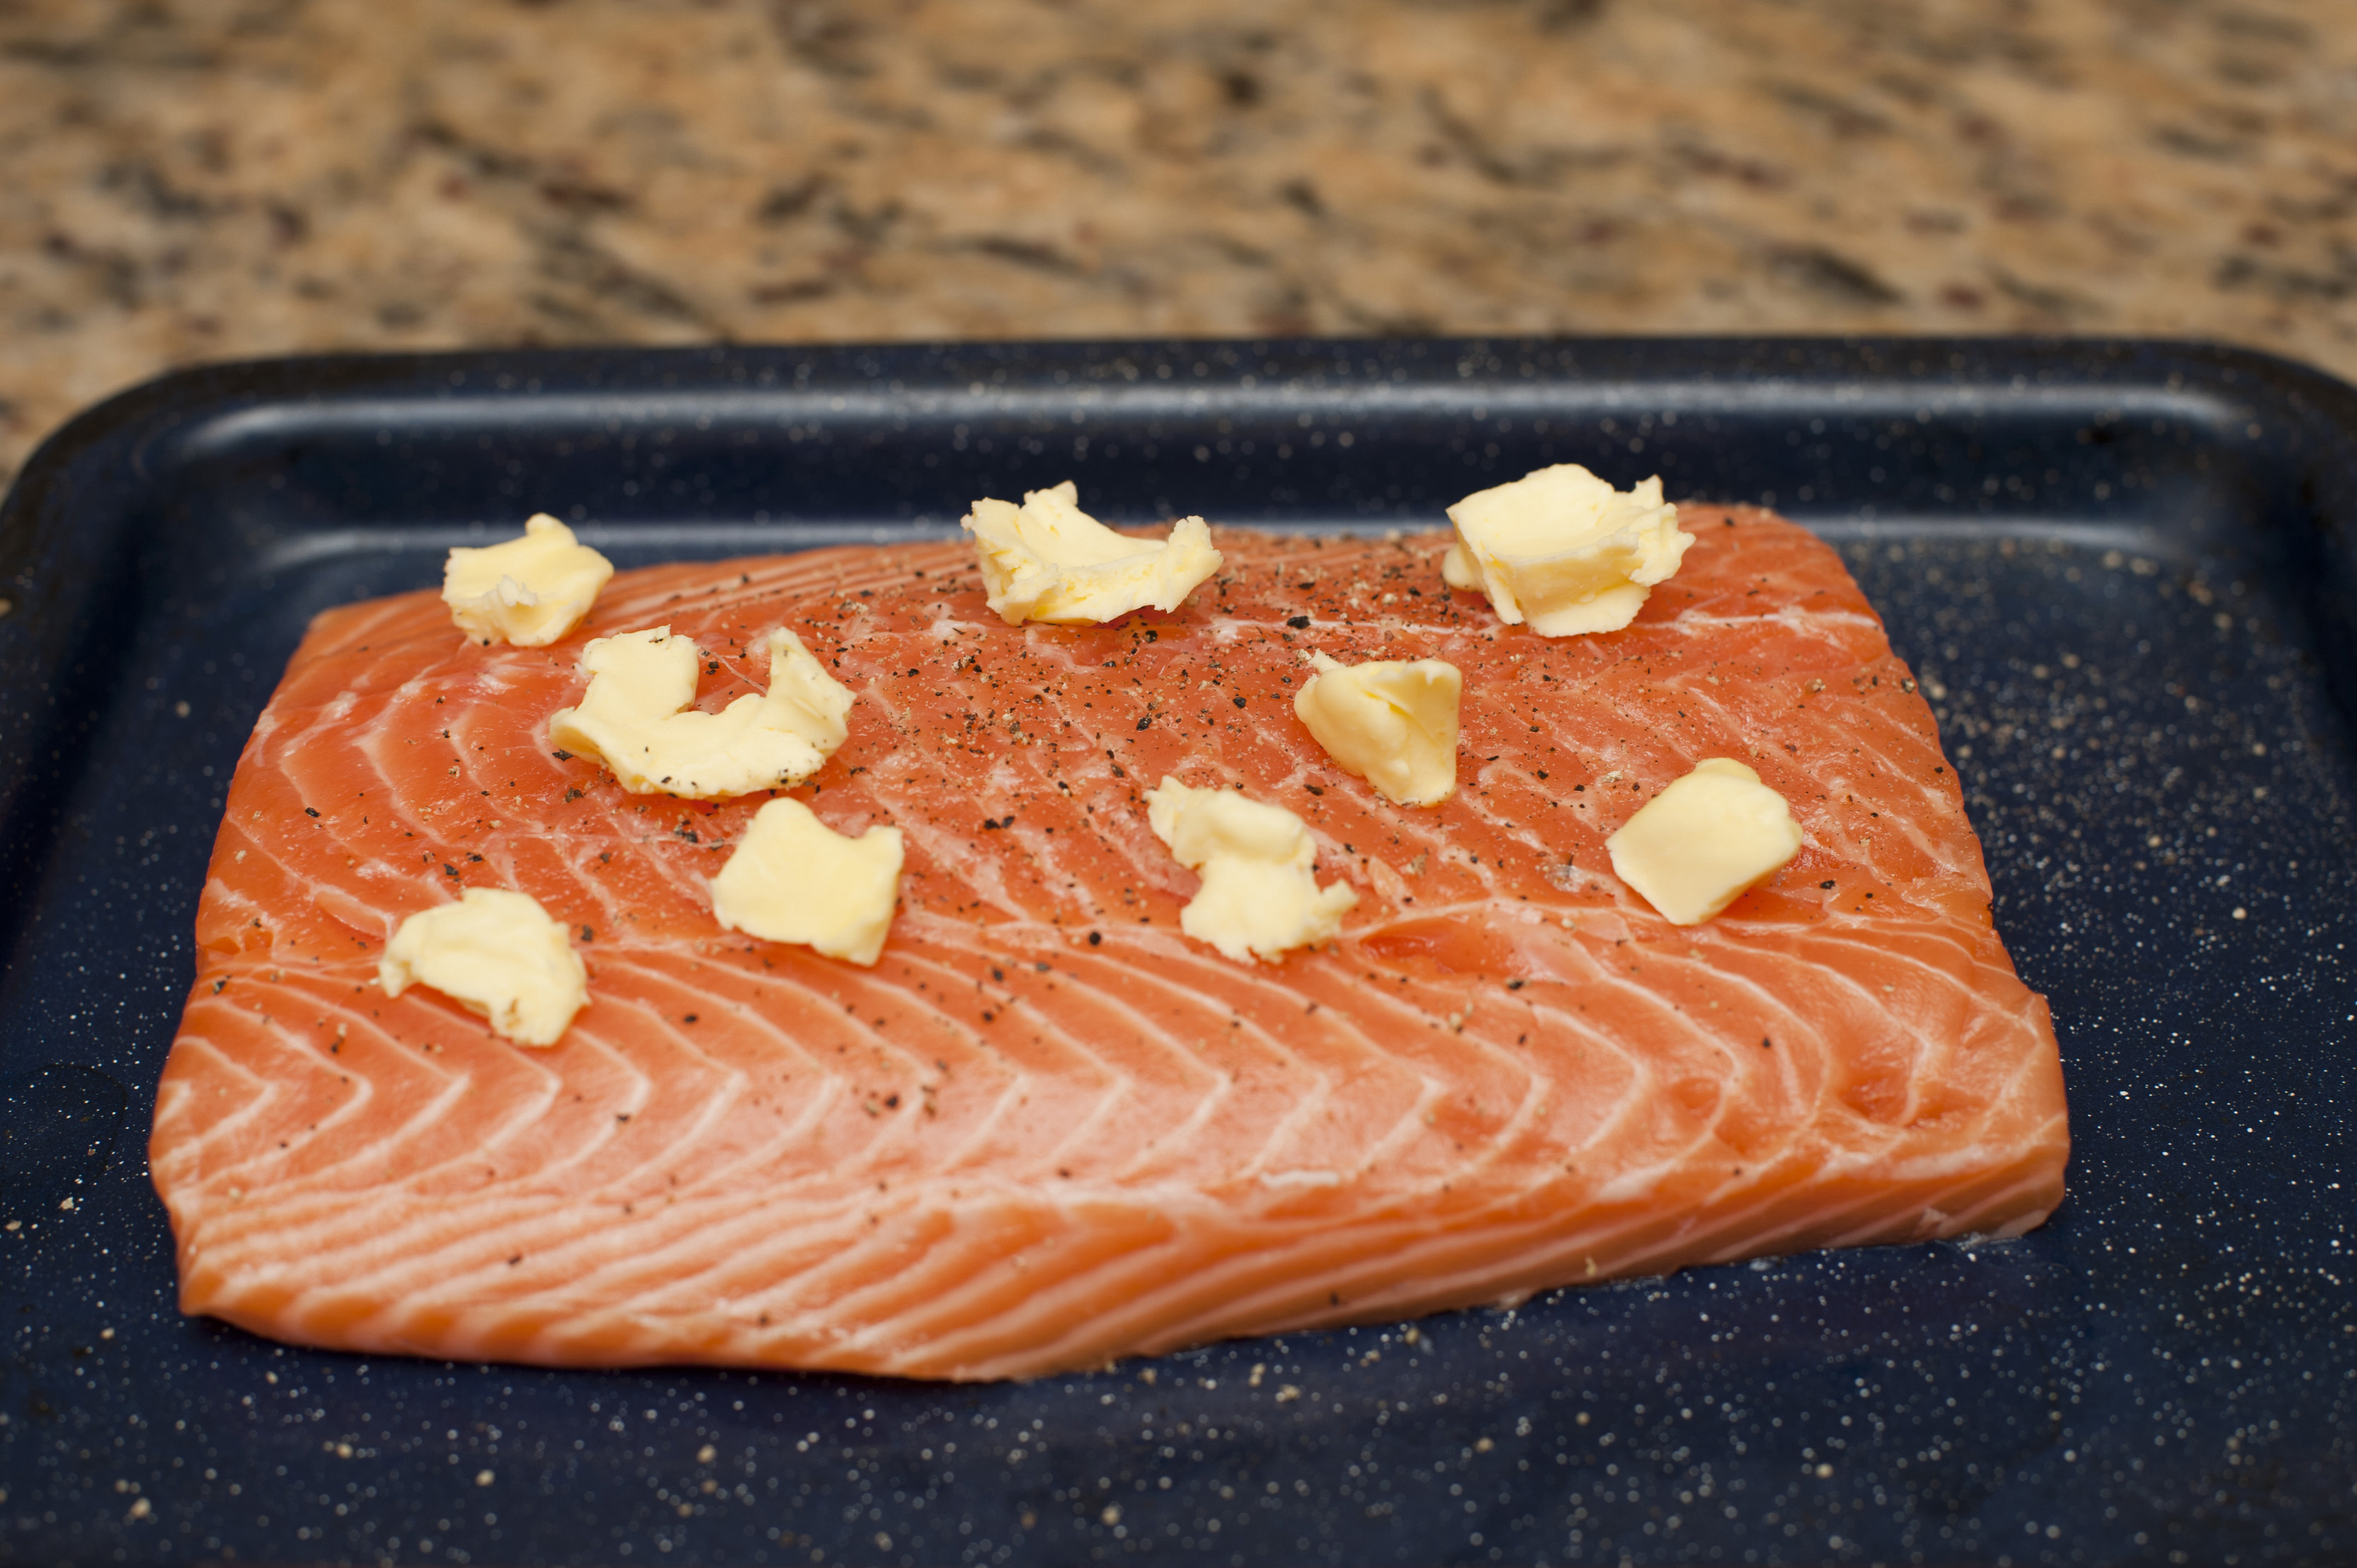 Raw Filet of Salmon Seasoned with Pepper and Pats of Butter on Baking Pan on Counter Top